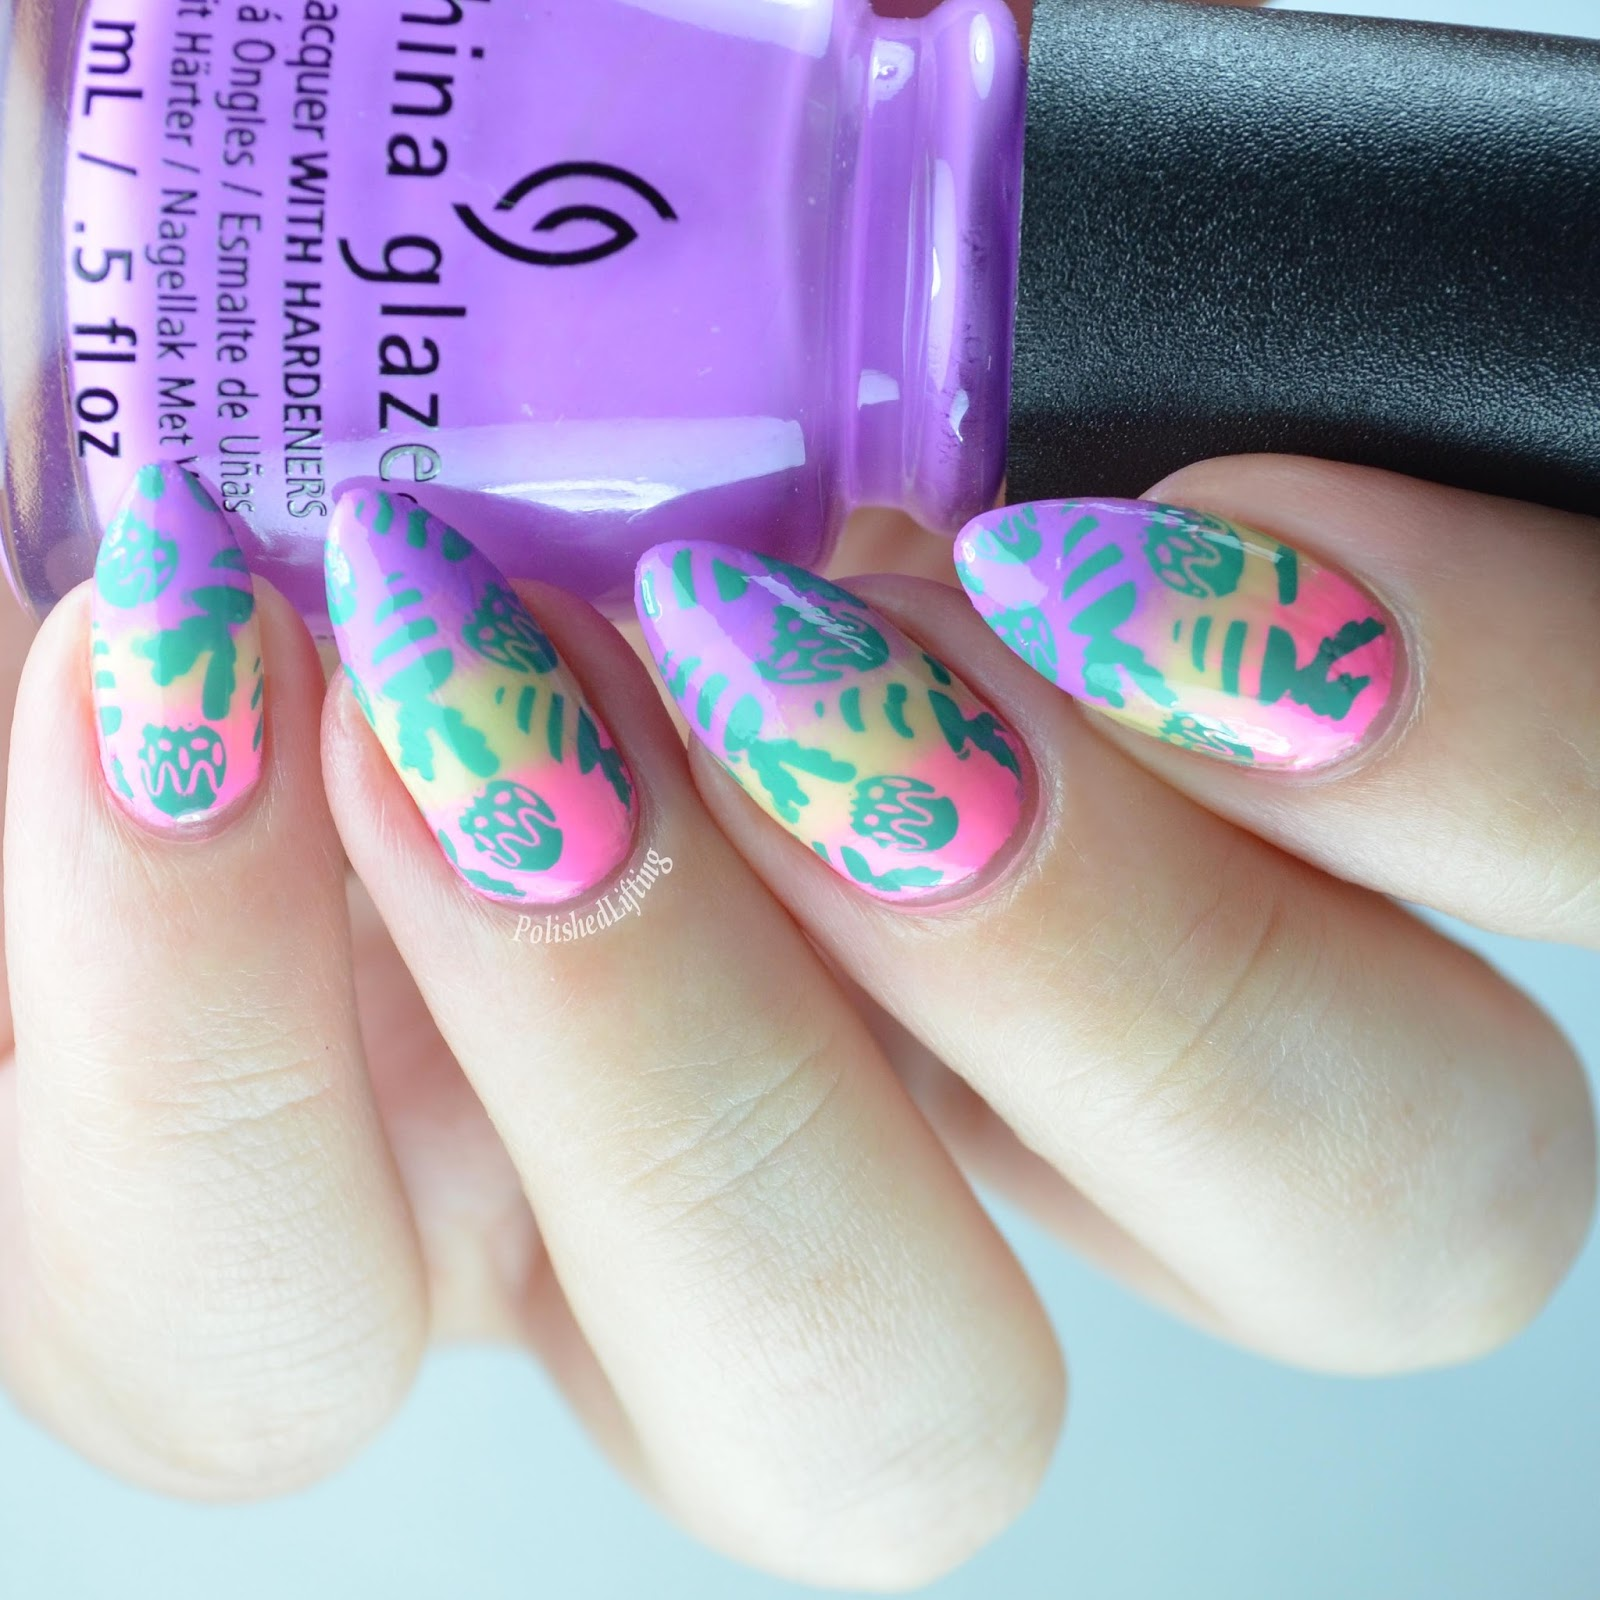 Polished Lifting: March Clairestelle8 Nail Art Challenge - Easter